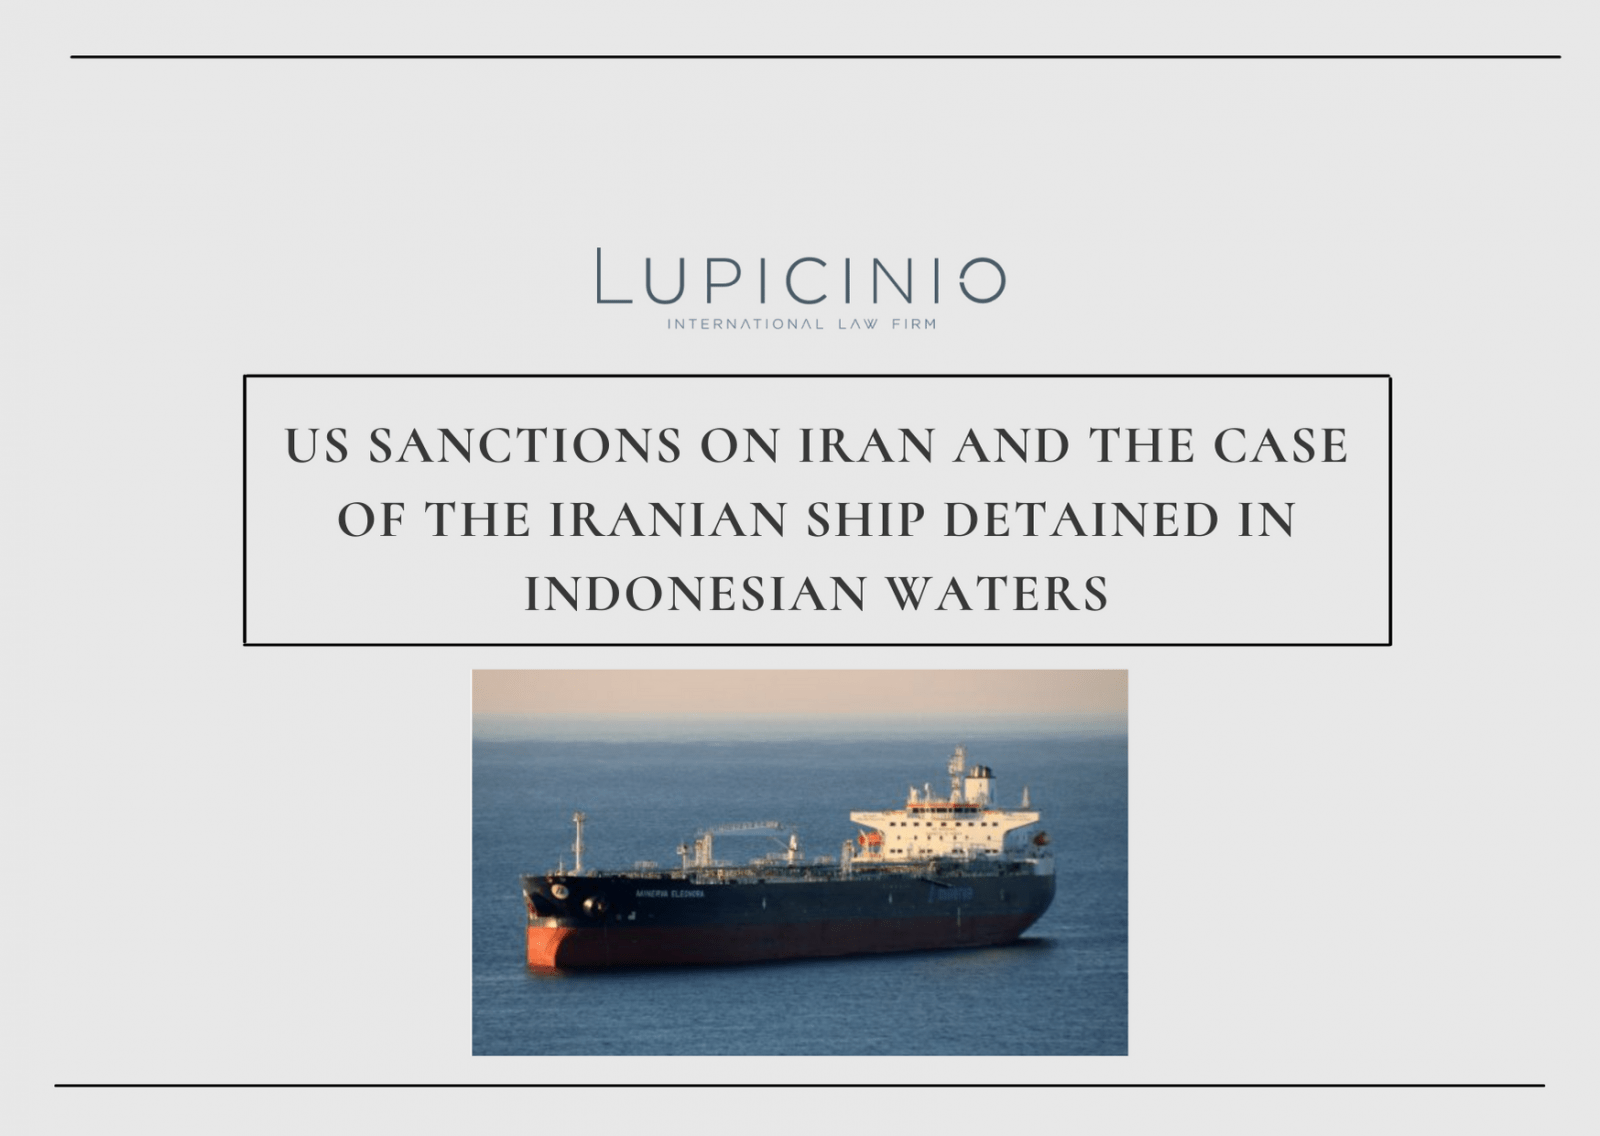 US SANCTIONS ON IRAN AND THE CASE OF THE IRANIAN SHIP DETAINED IN INDONESIAN WATERS